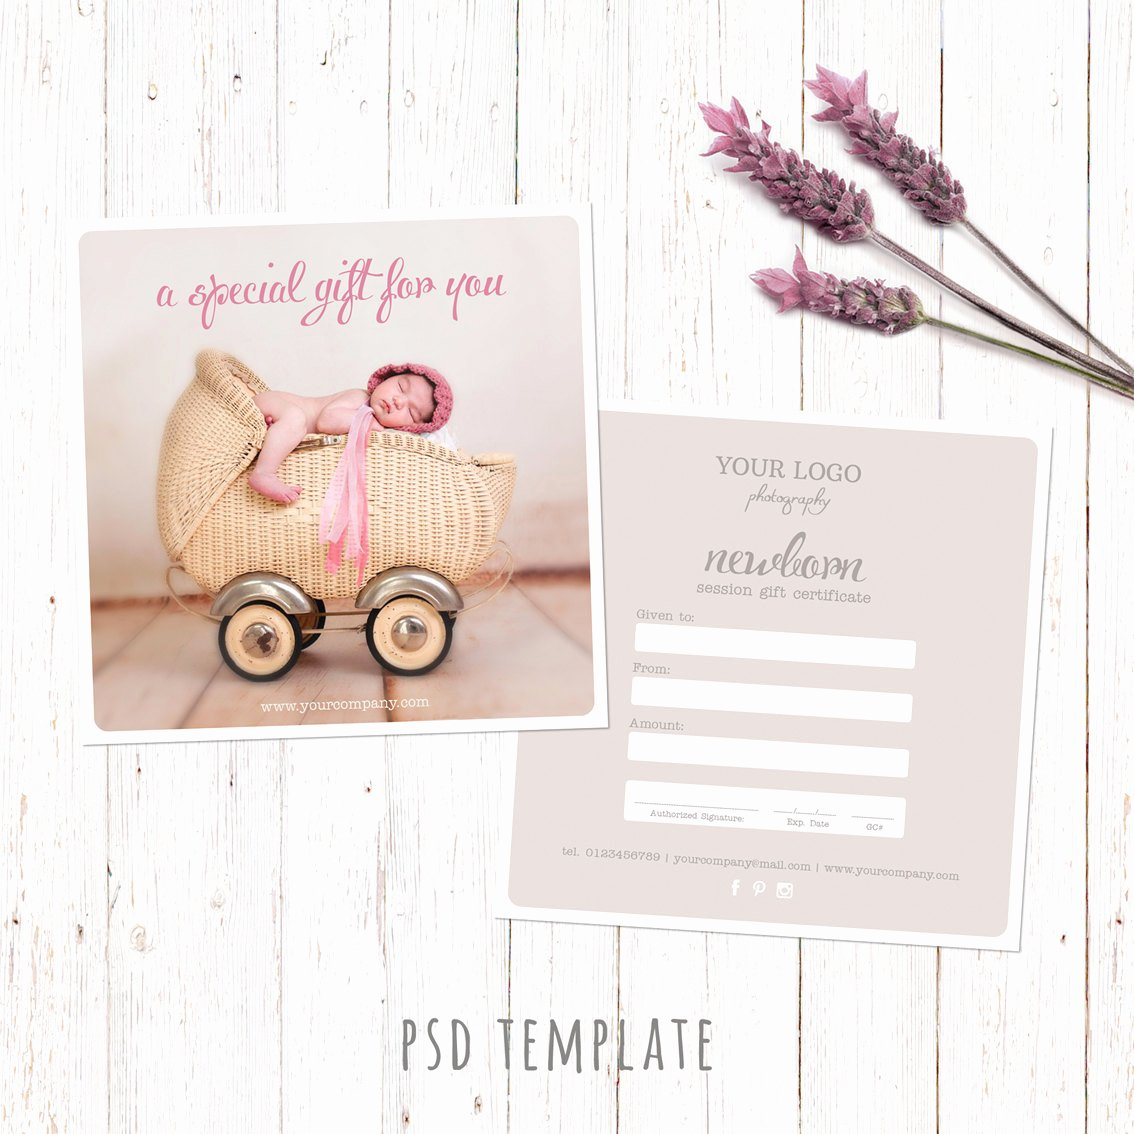 Photography Gift Certificate Template Free Fresh Gift Certificate Template Newborn Session Photography T